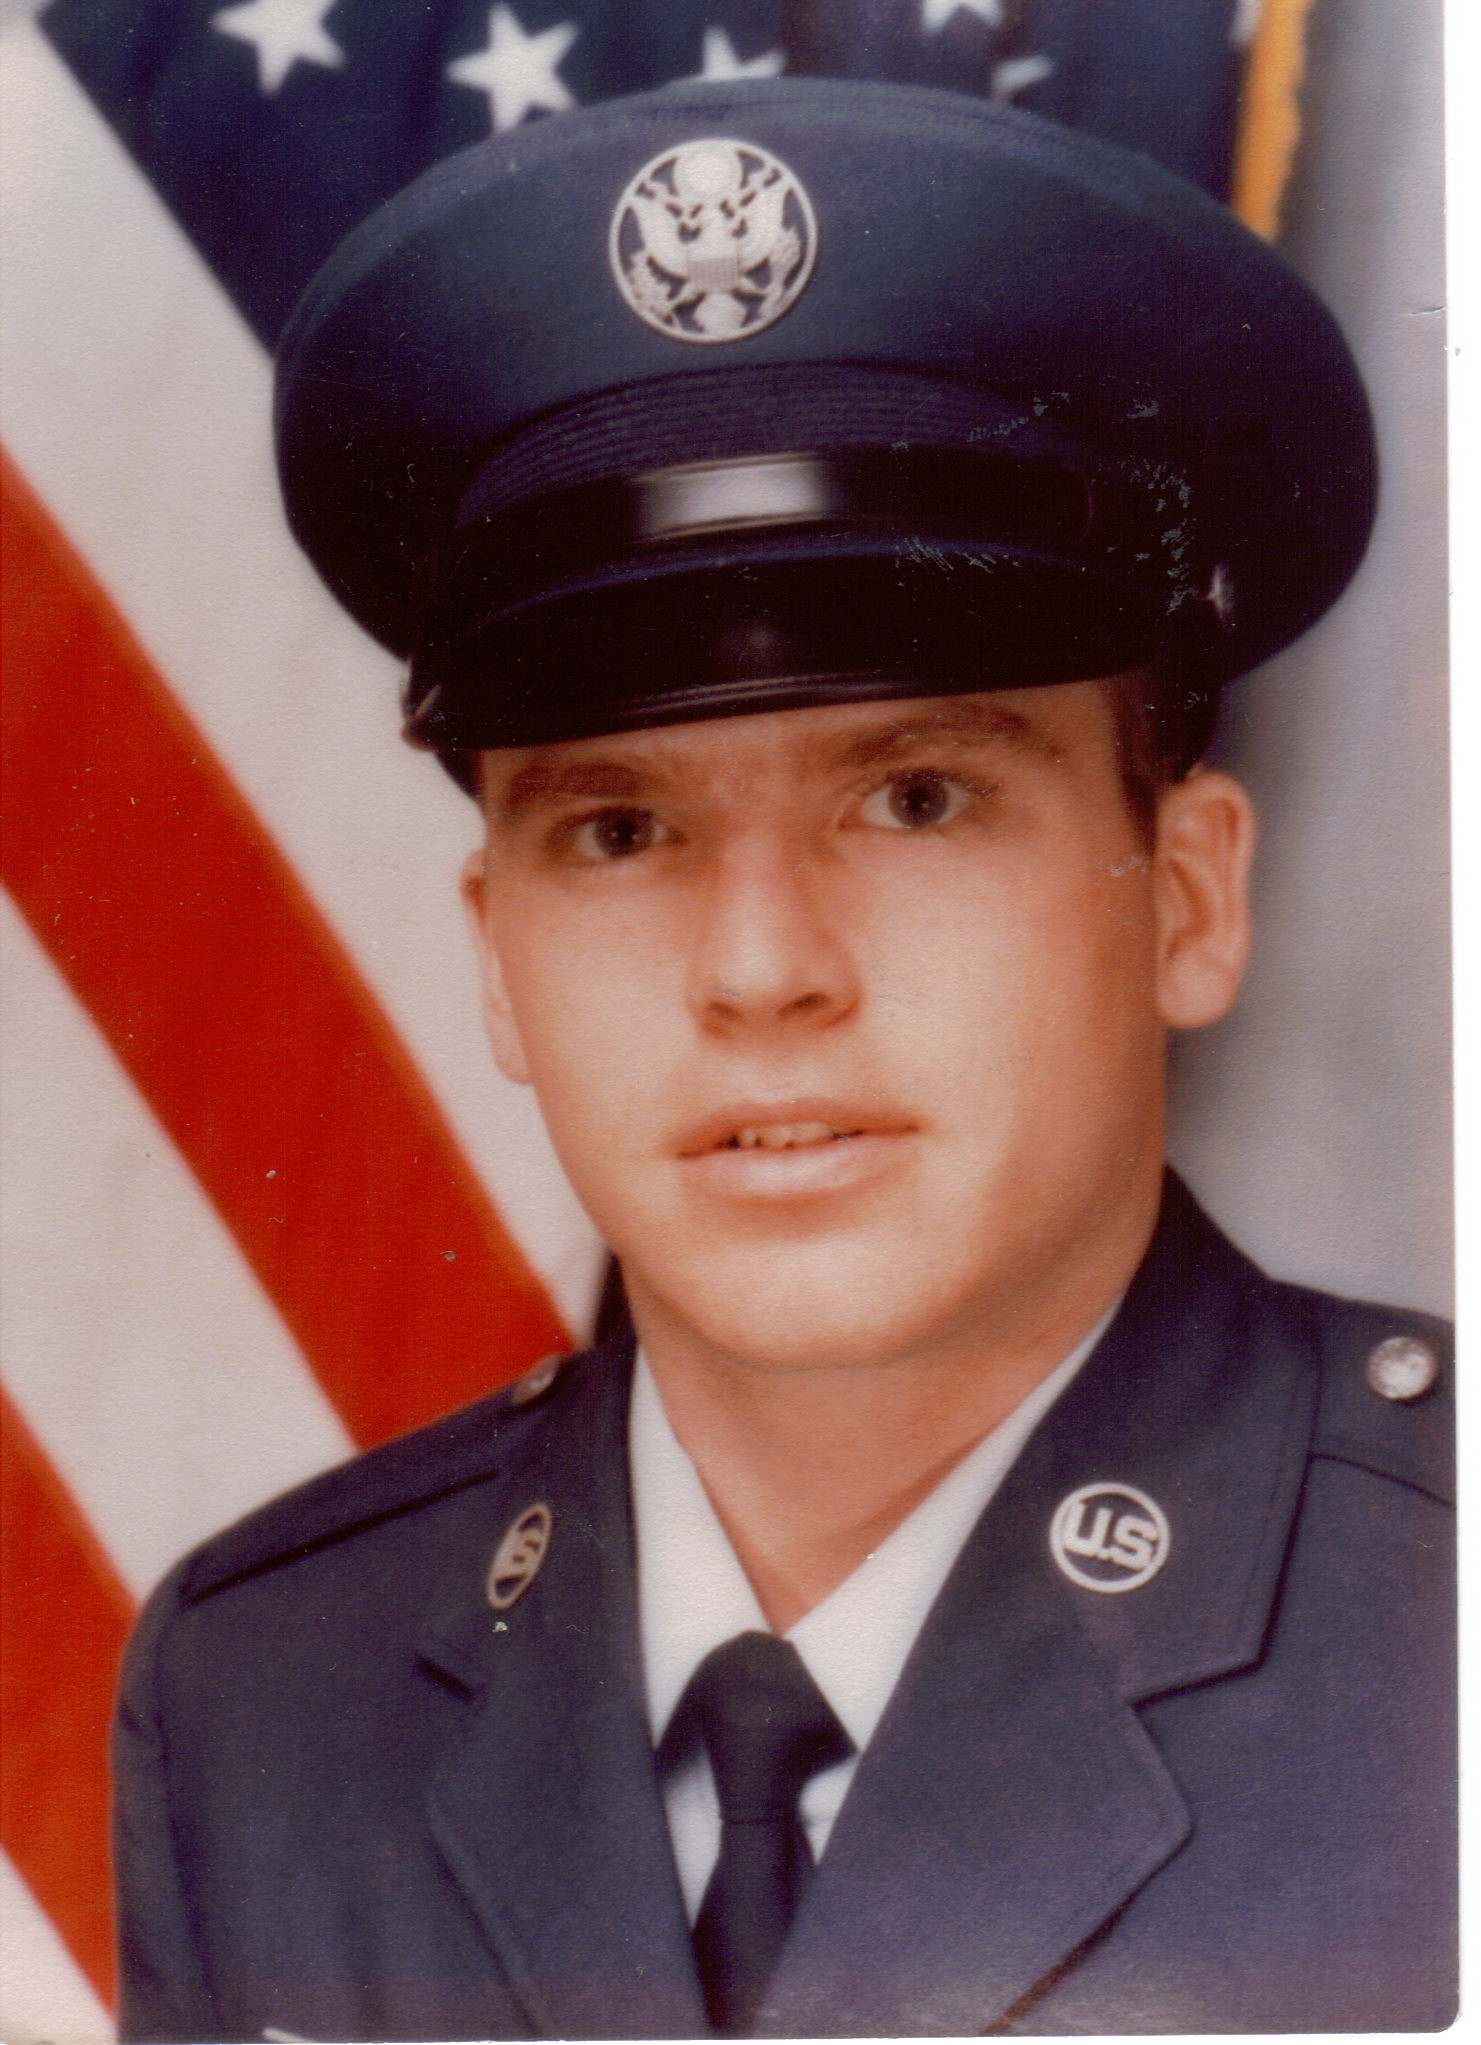 SSgt Rickey Baugh (Radar) - Please describe who or what influenced your decision to join the Air Force.